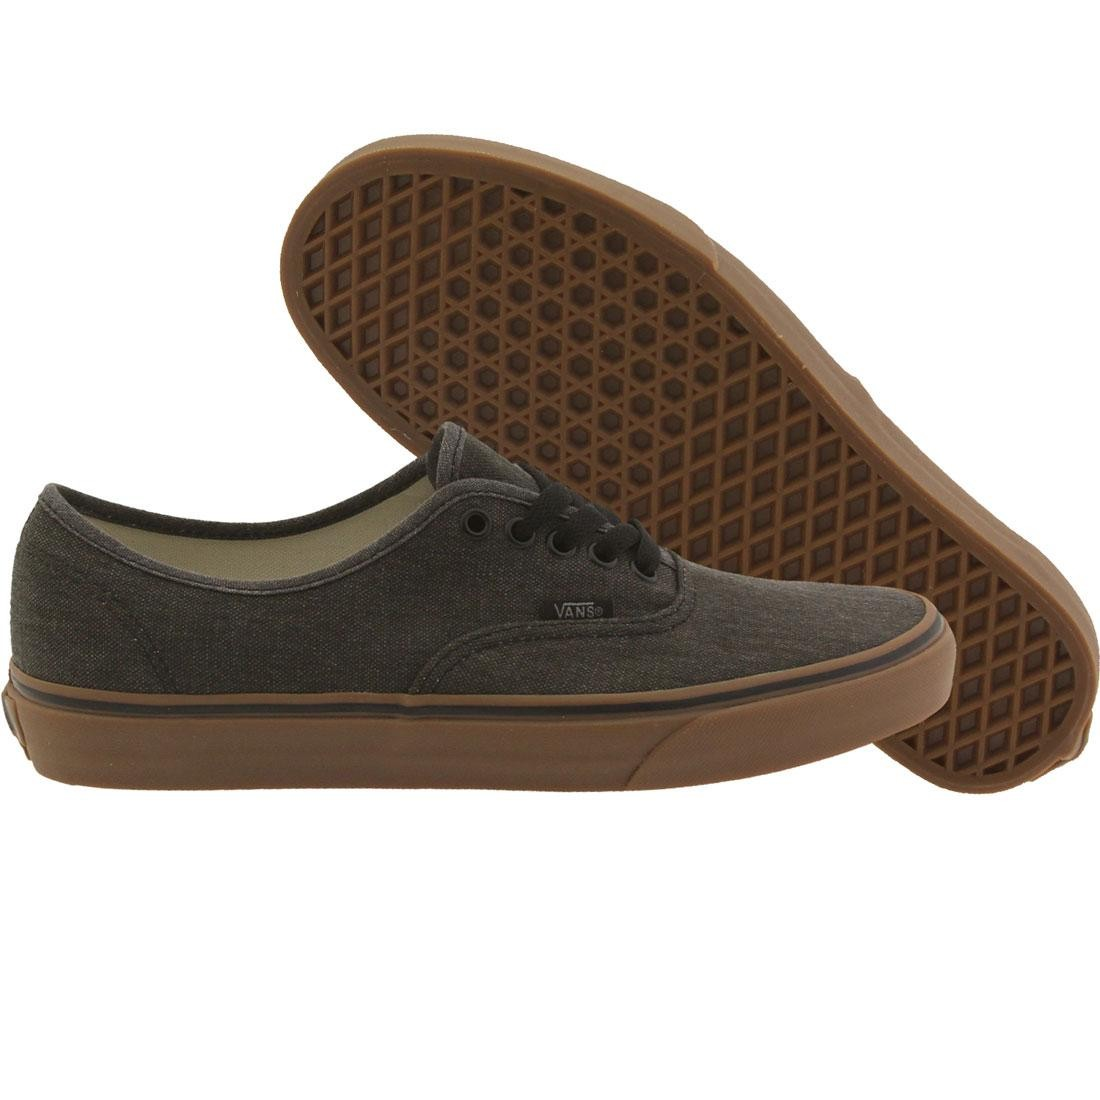 6d49b569891f Vans Men Authentic - Washed Canvas black gum